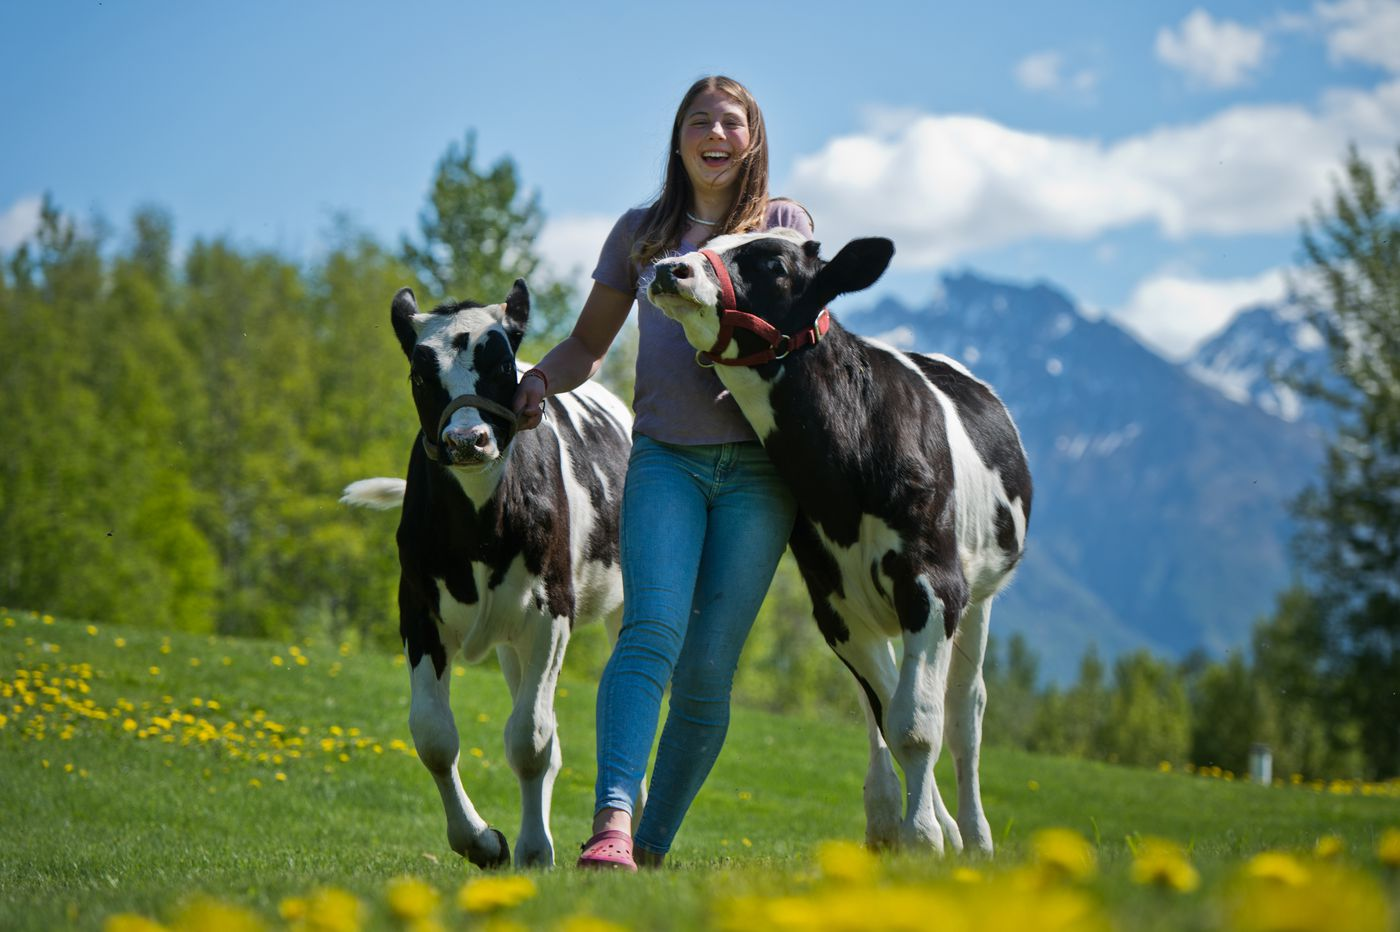 MAY 28. Olivia Beck, 15, holds on to her cattle Finn, left, and Forest at her home in Palmer. The calves would've shown in the young beef competition at the Alaska State Fair, she said. The fair was cancelled due to the pandemic. (Marc Lester / ADN)